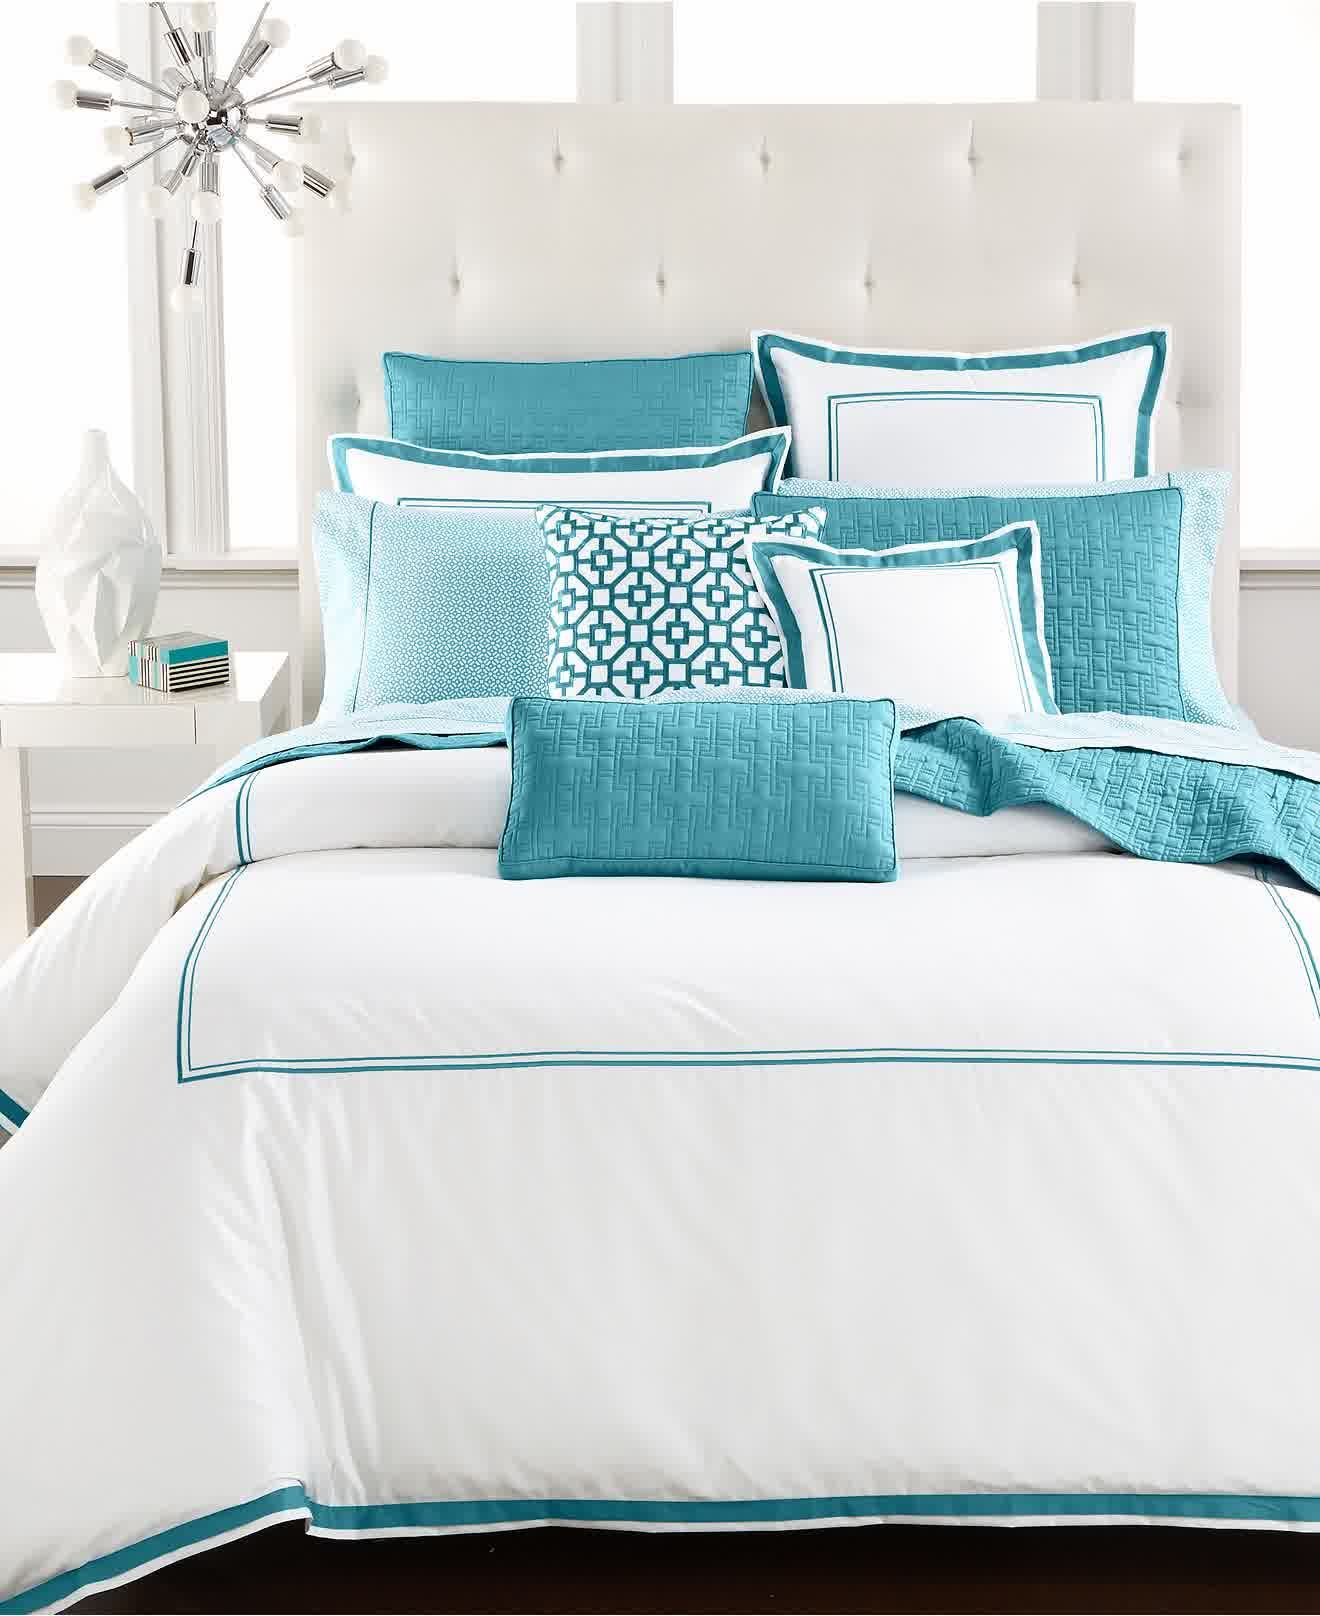 Effigy of turquoise and white bedding set product for Turquoise bedroom decor